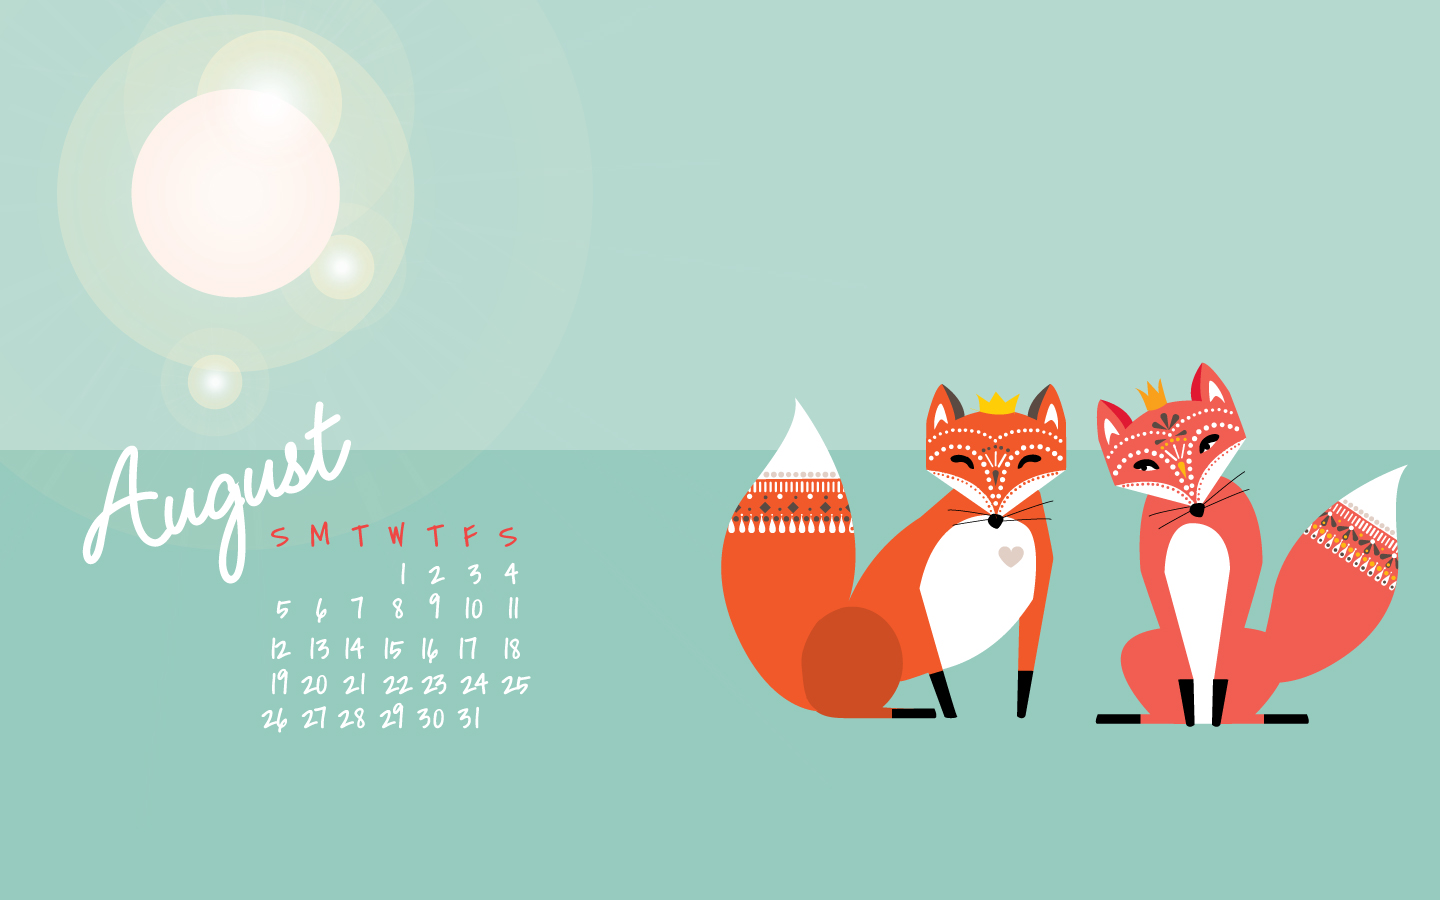 Calendar Desktop Wallpaper August : Thecarolinejohansson tag archive august background